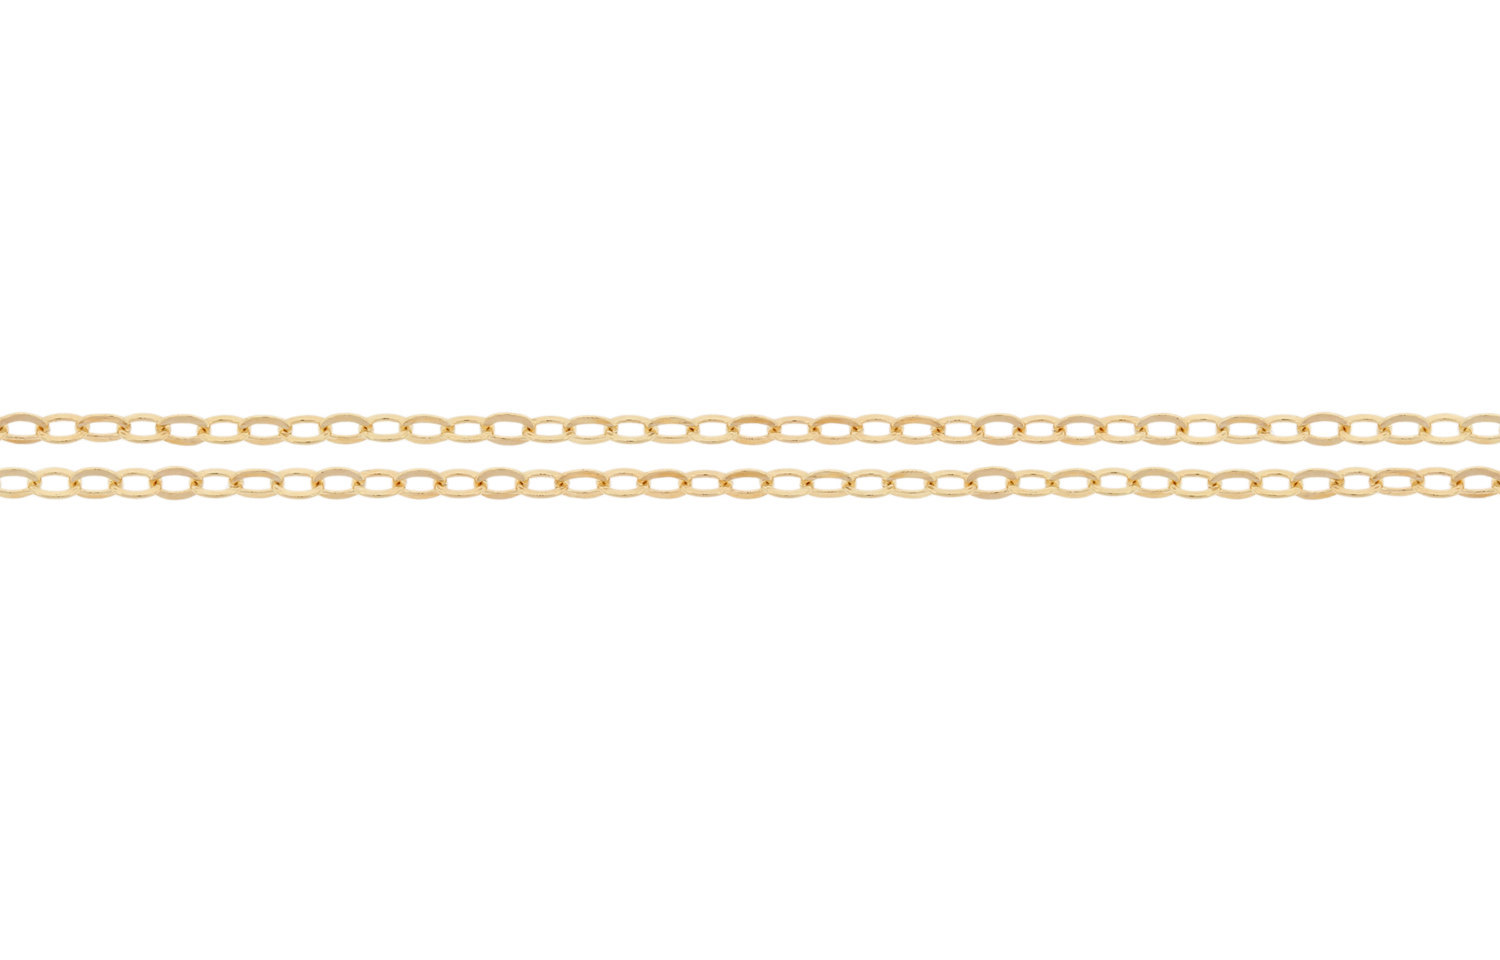 Primary image for Chains, Flat Cable Chain, 14Kt Gold Filled, 1.5x1.2mm, Pkg Of 20ft (2306-20)/1